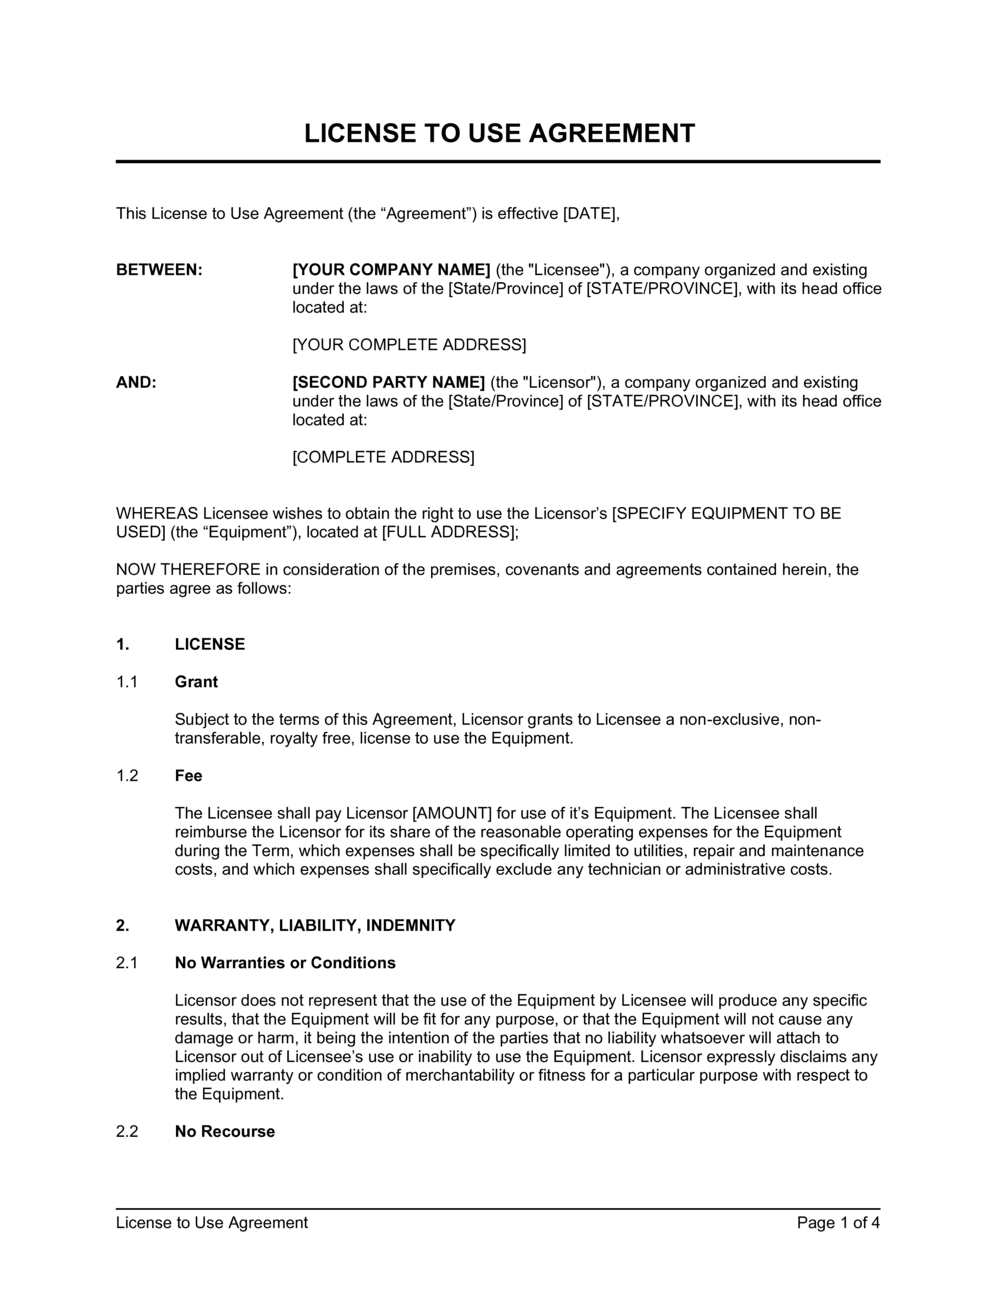 Business-in-a-Box's License to Use Agreement Template